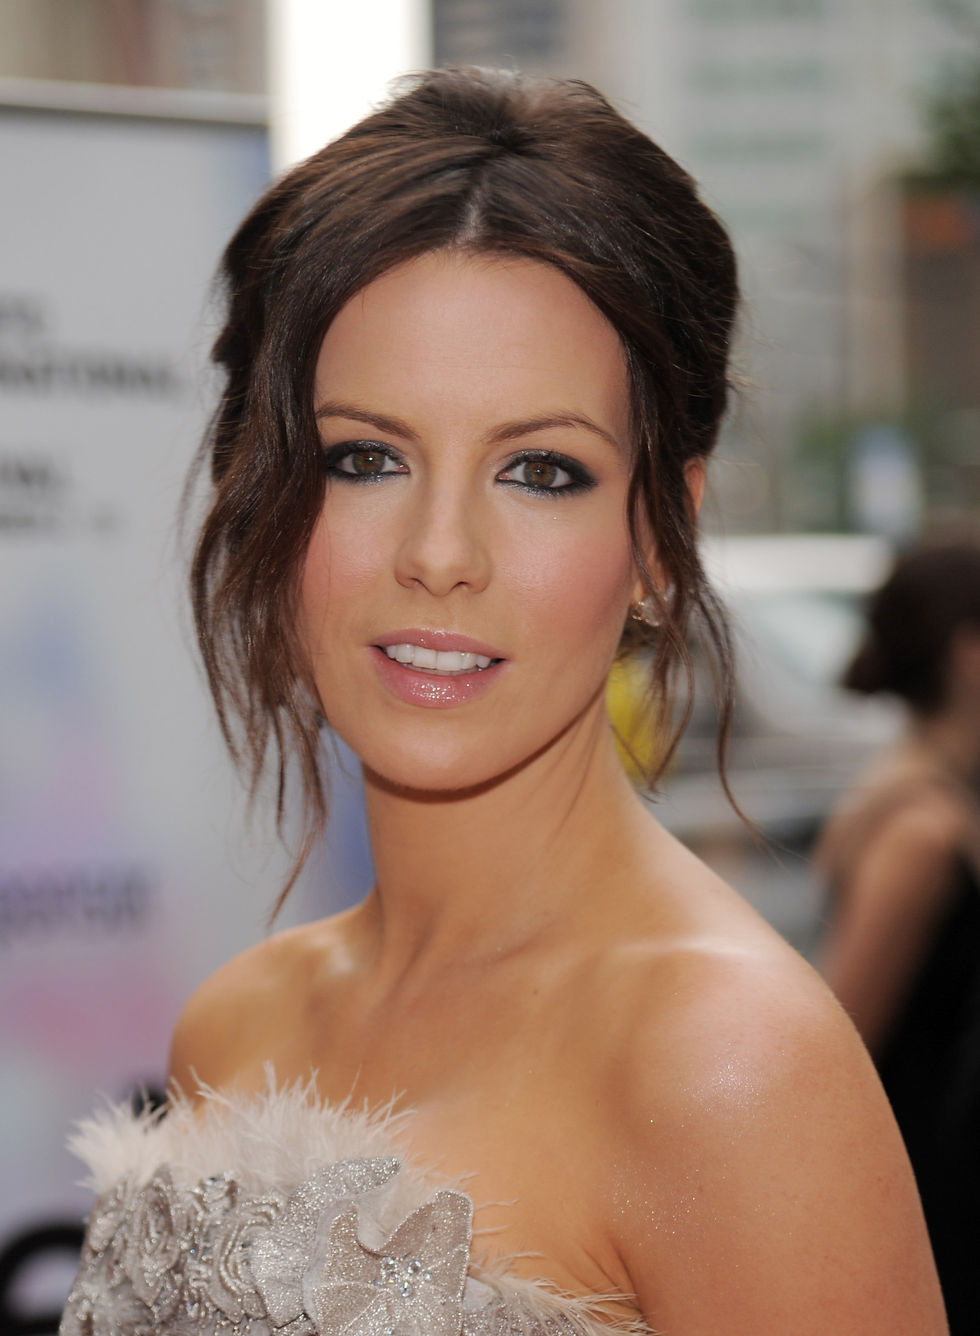 kate-beckinsale-nothing-but-the-truth-premiere-in-toronto-01